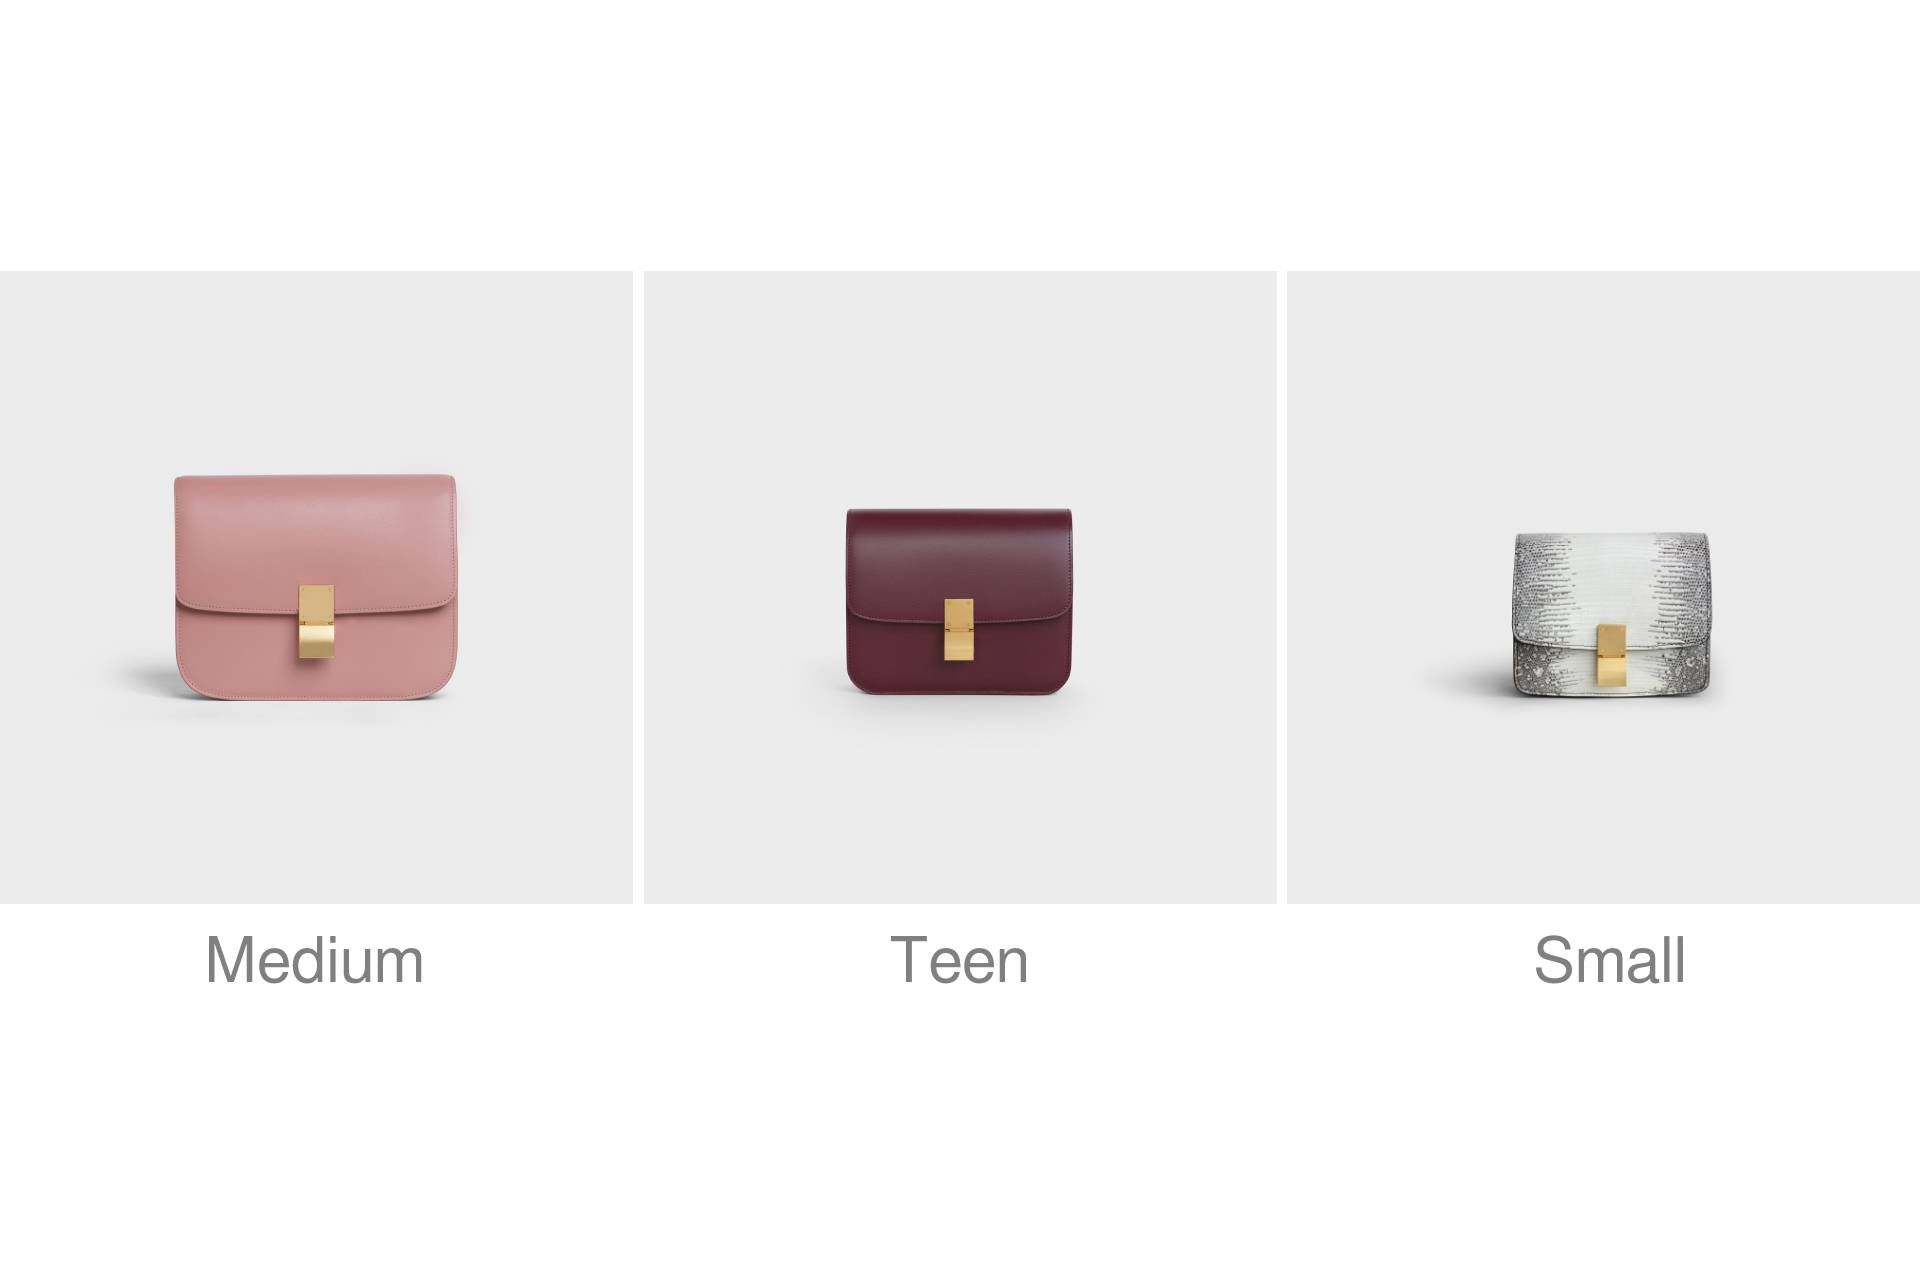 Celine Classic bag size comparison. Medium in Antique Rose, Teen in Burgundy, Small in Lizard. Gift for mother, sister, wife, girlfriend.